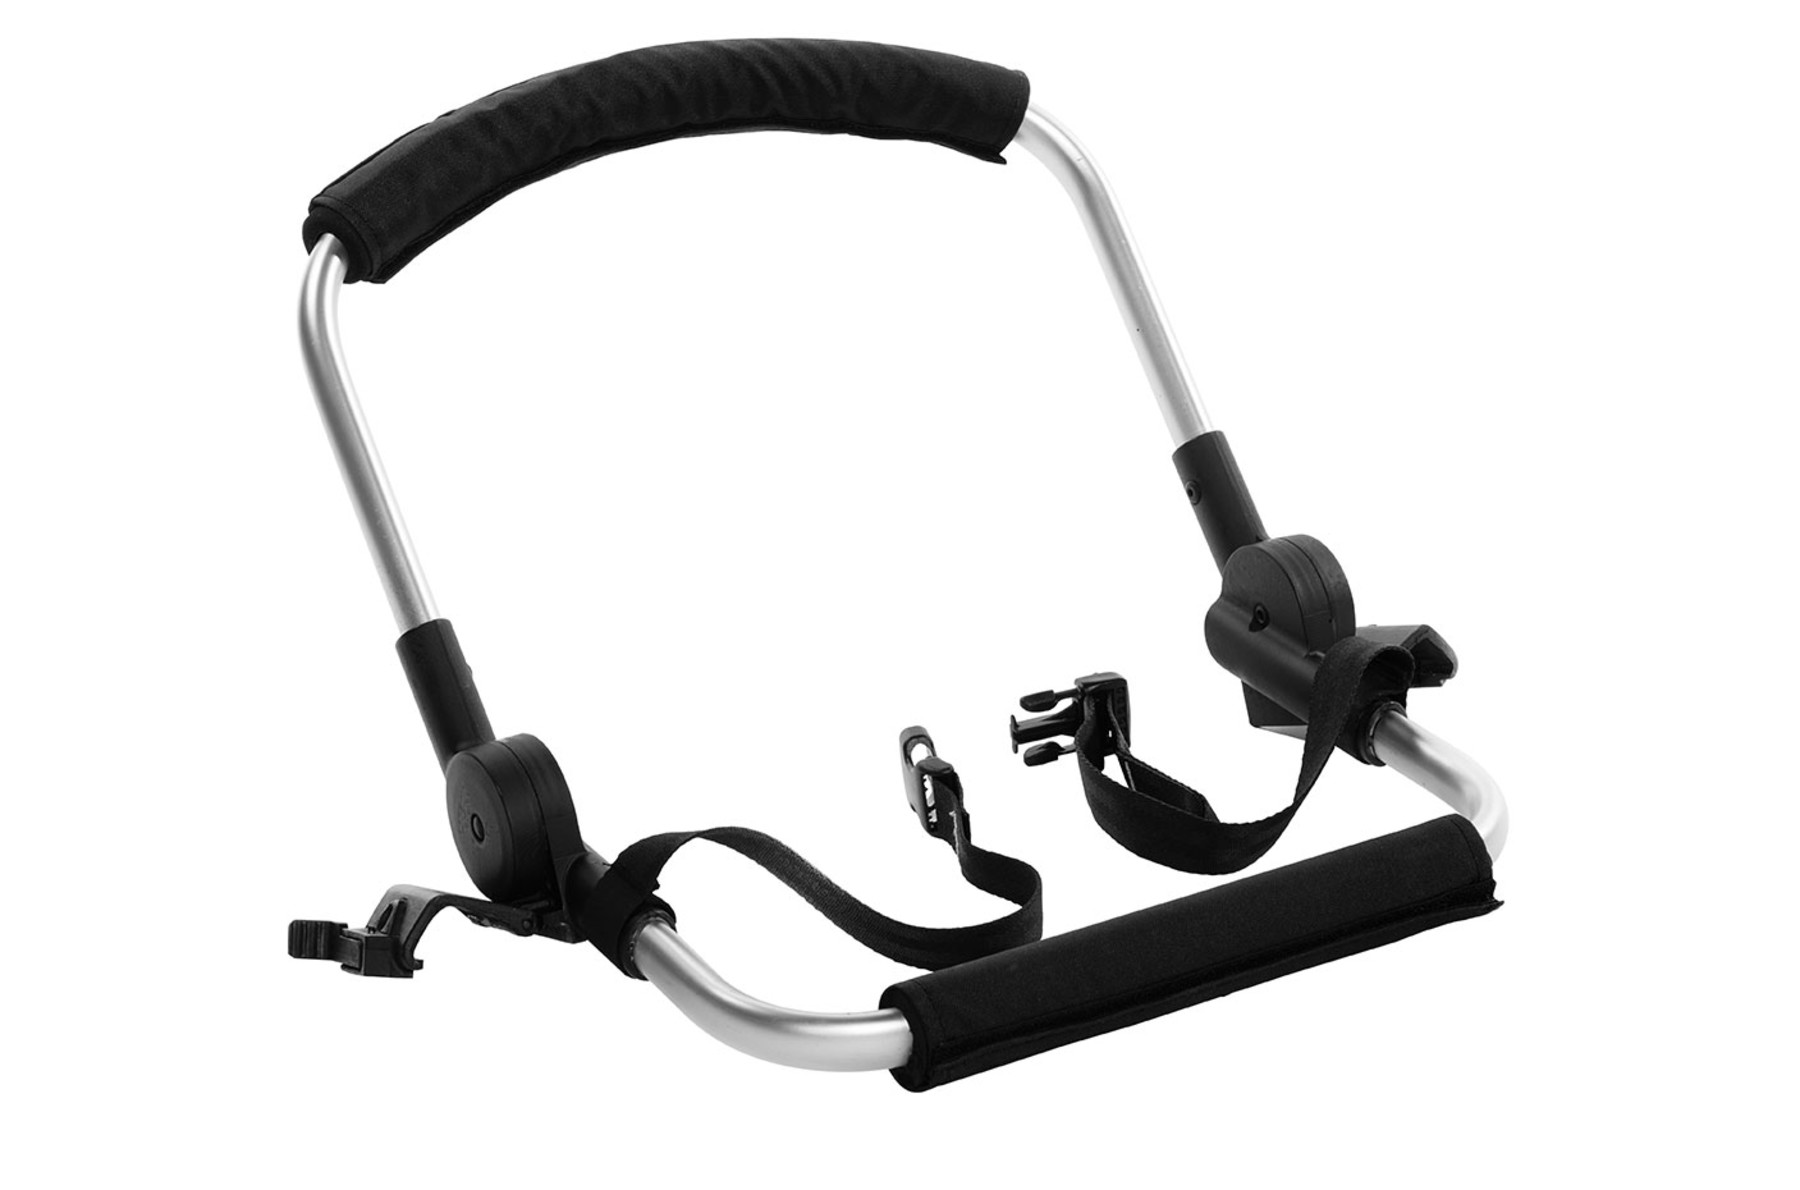 Accessory-Thule Infant Car Seat Adapter